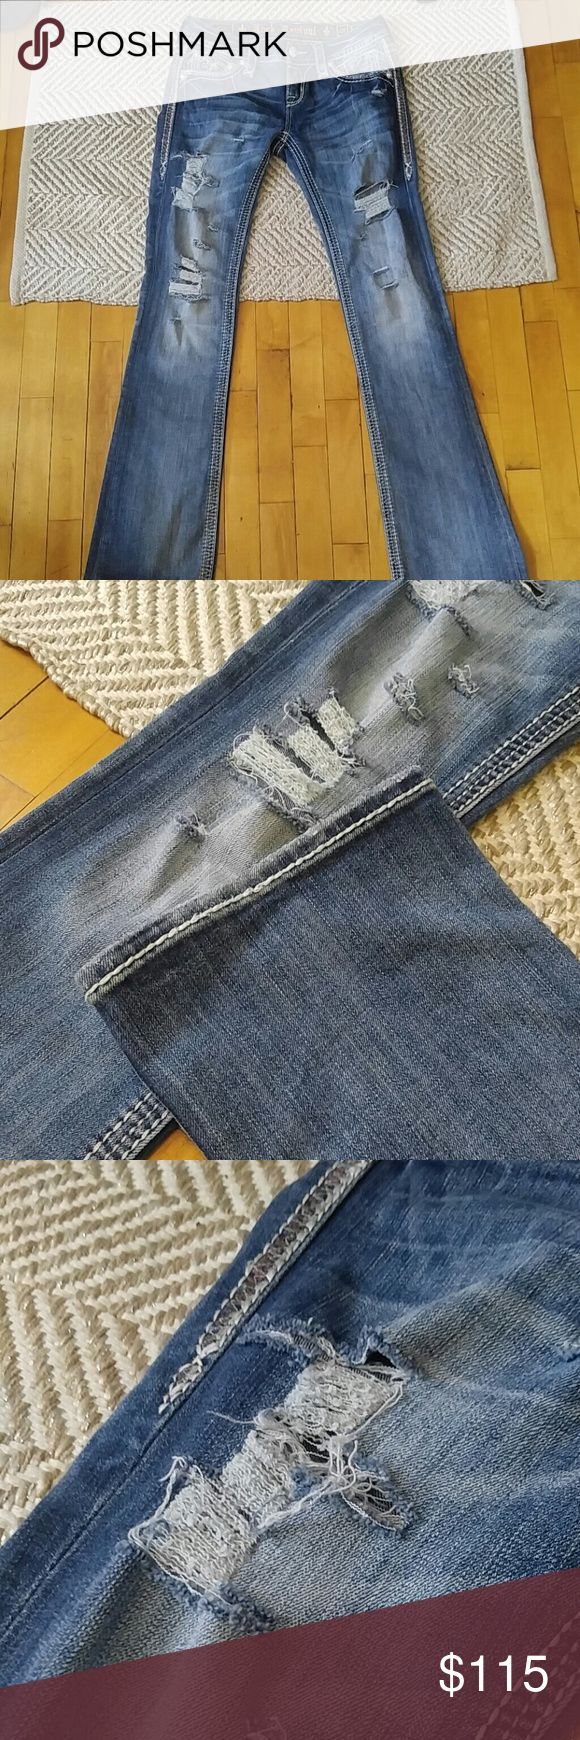 Rock Revival Coe Bootcut Waist: 28 Inseam: 33 I CUSTOM distressed these jeans. They originally come with no holes. I have never worn these and they have NOT been washed yet. They are brand new with the tags. They originally go for $160 and I DID pay full price. There is nothing wrong with these❤   ❤Price is FIRM for now❤ Rock Revival Jeans Boot Cut